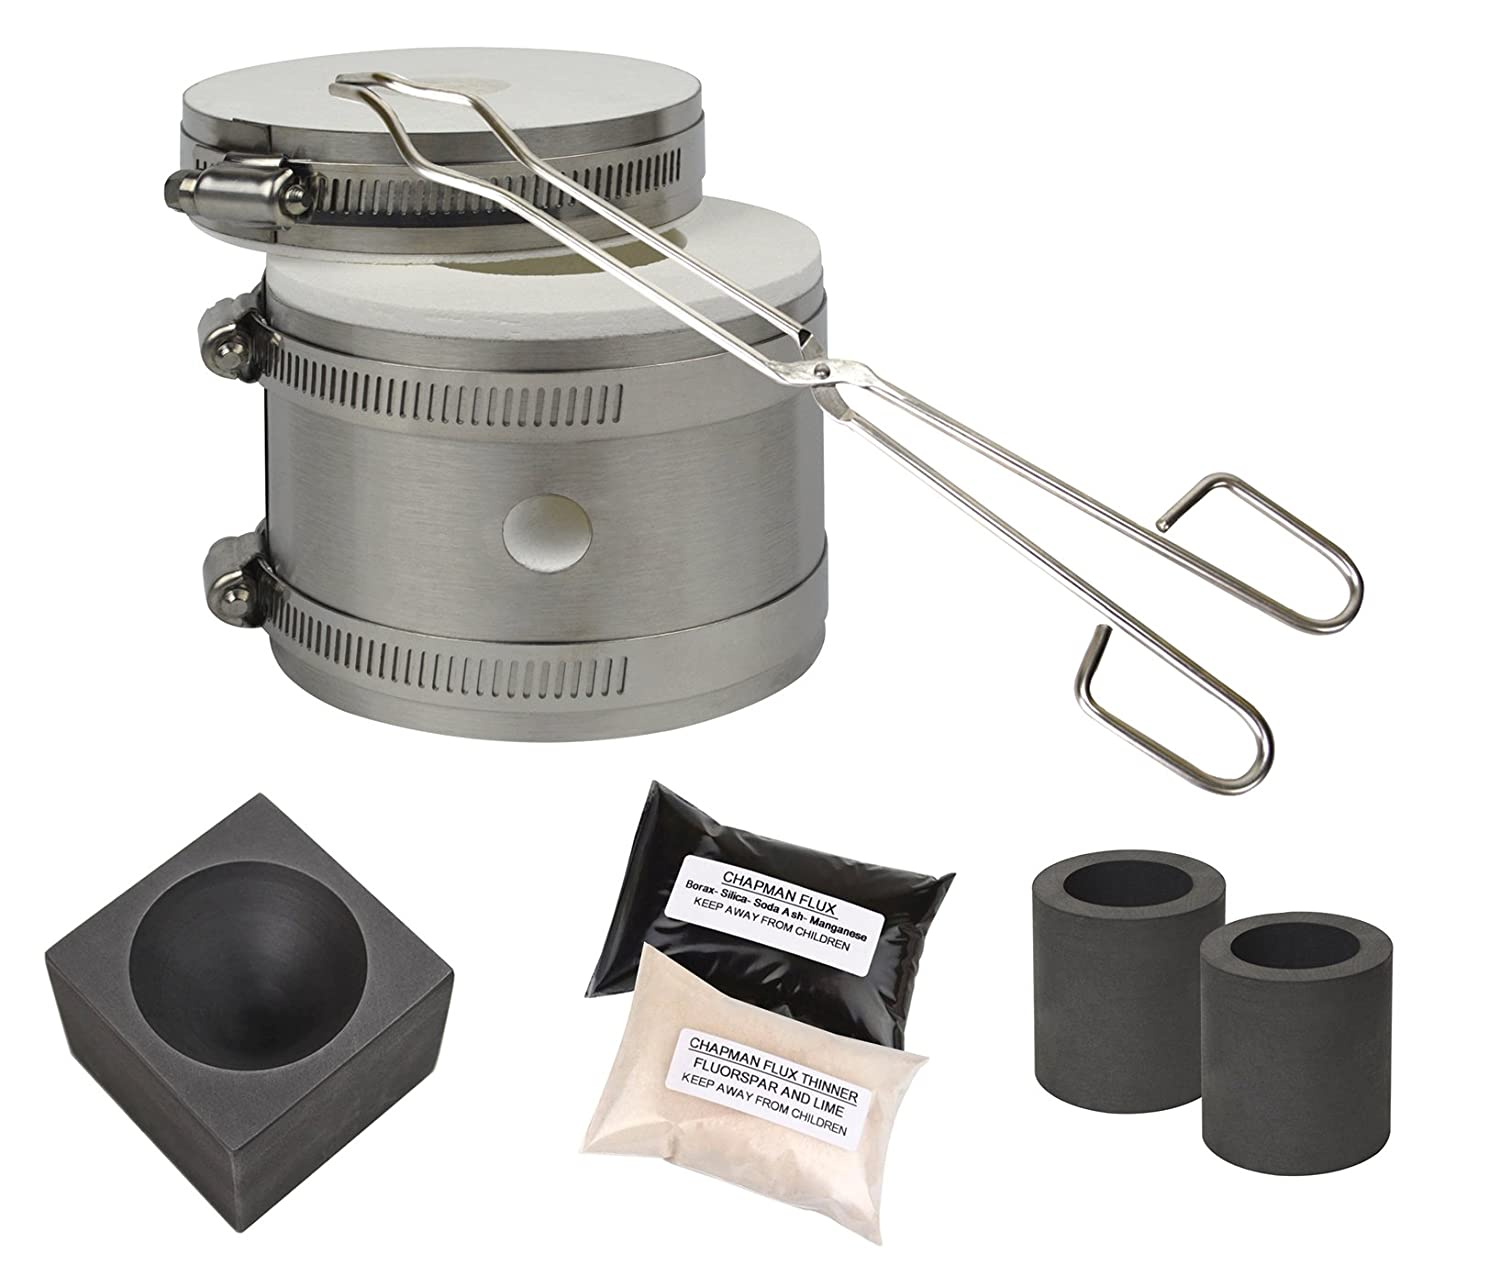 Mini Kwik Kiln Kit w/ Tongs Chapman Flux Flux Thinner Conical Mold & 2 Graphite Crucibles Jewelry Making Gold Silver Melting Casting Gas Furnace Kit PMC Supplies KIT-0126